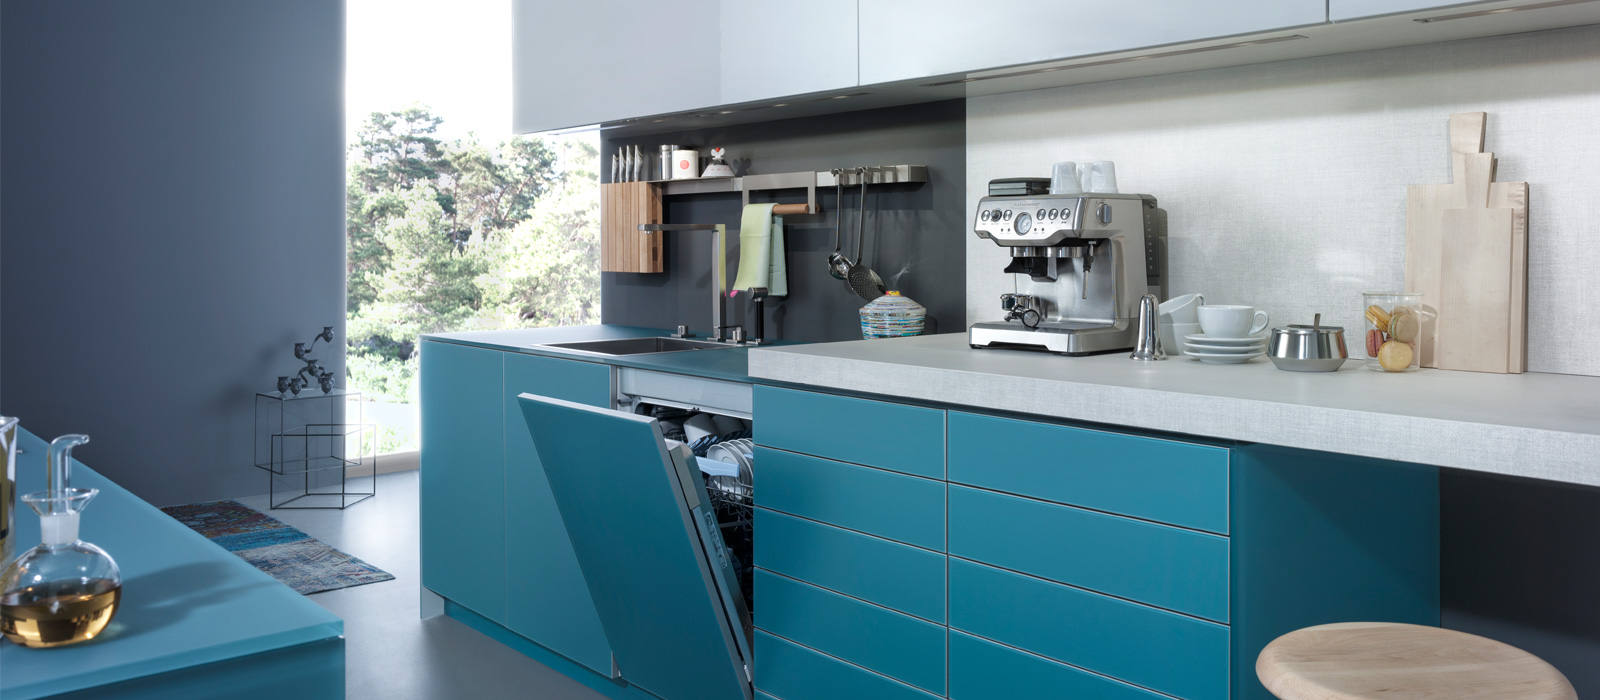 LARGO FG IOS M 2013 - Renaissance of Color | Kitchen Cabinets ...